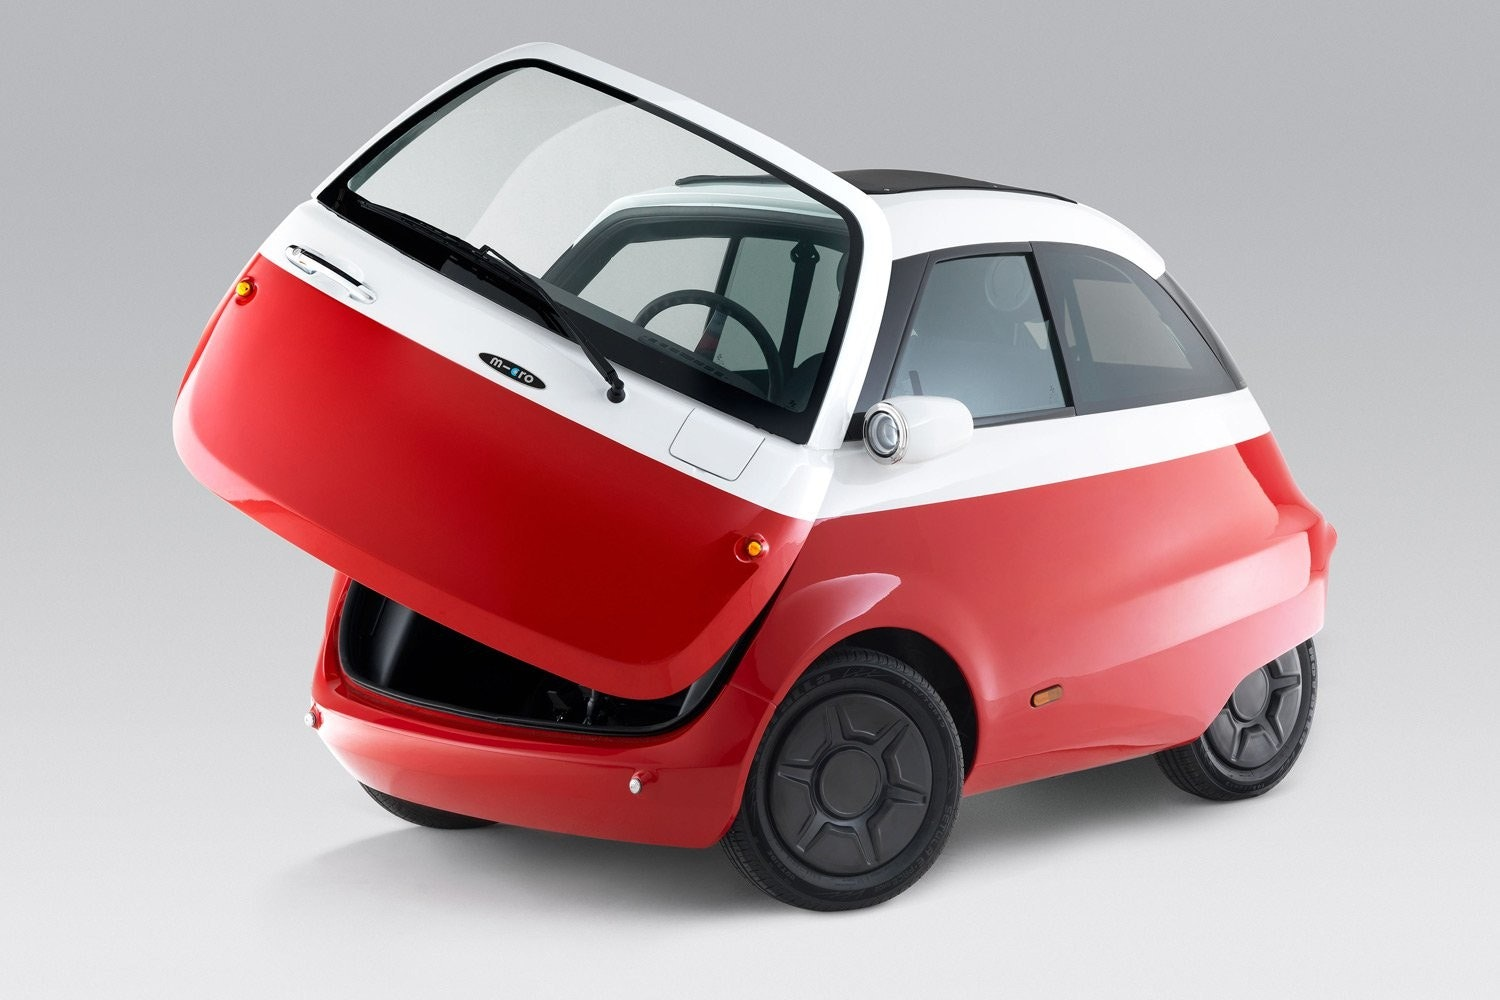 Isetta, Car, Electric vehicle, Iso Rivolta, BMW, Microlino, Micro Mobility Systems, Electric car, , Vehicle, microlino 2018, car, motor vehicle, vehicle, red, automotive design, mode of transport, city car, vehicle door, product, automotive exterior